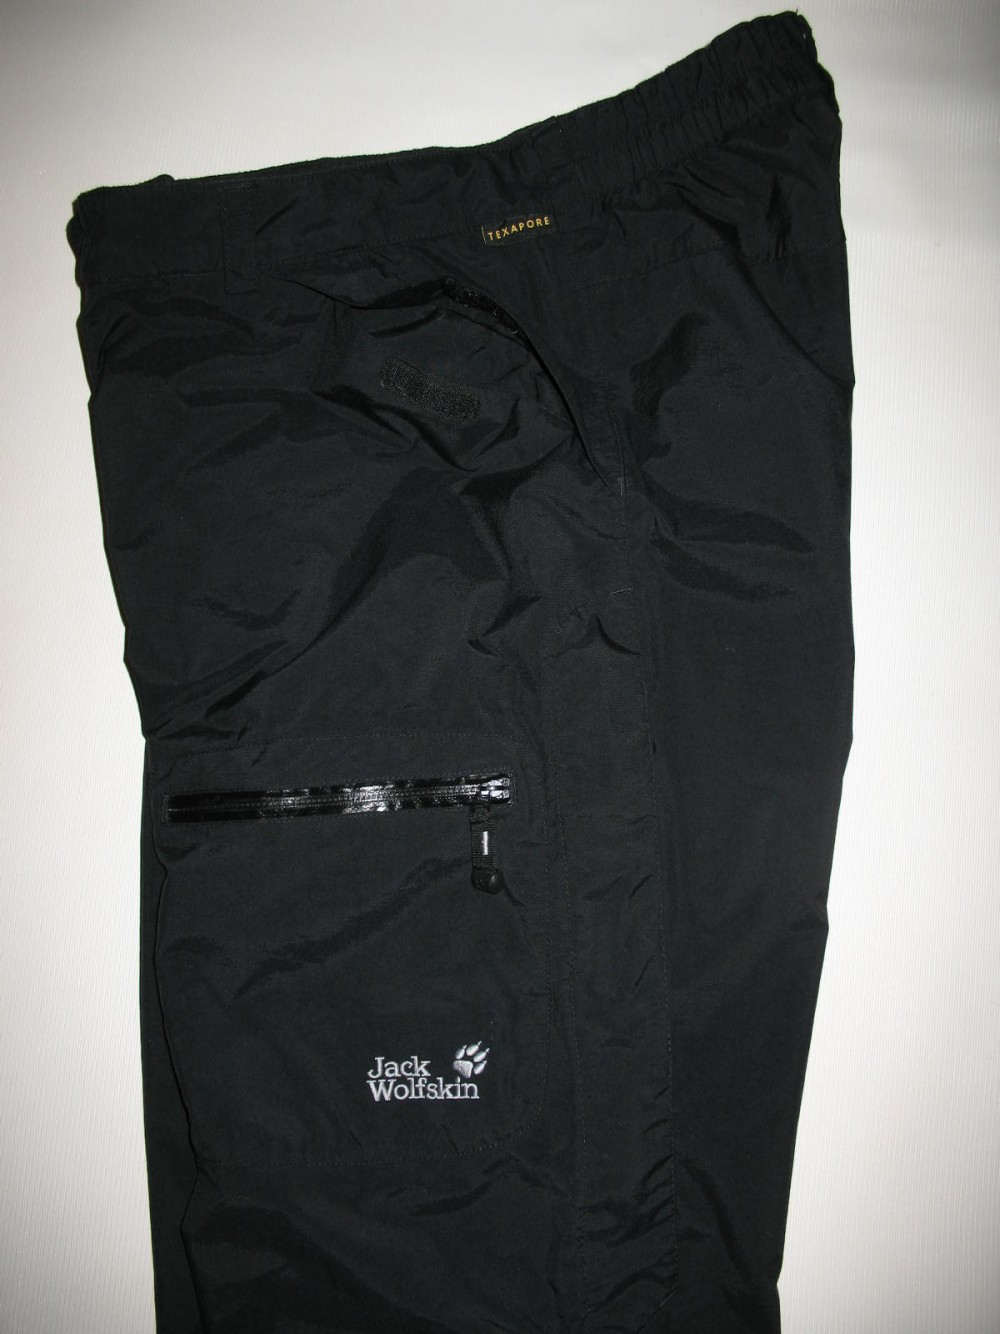 Штаны JACK WOLFSKIN texapore pants lady (размер L/M) - 3